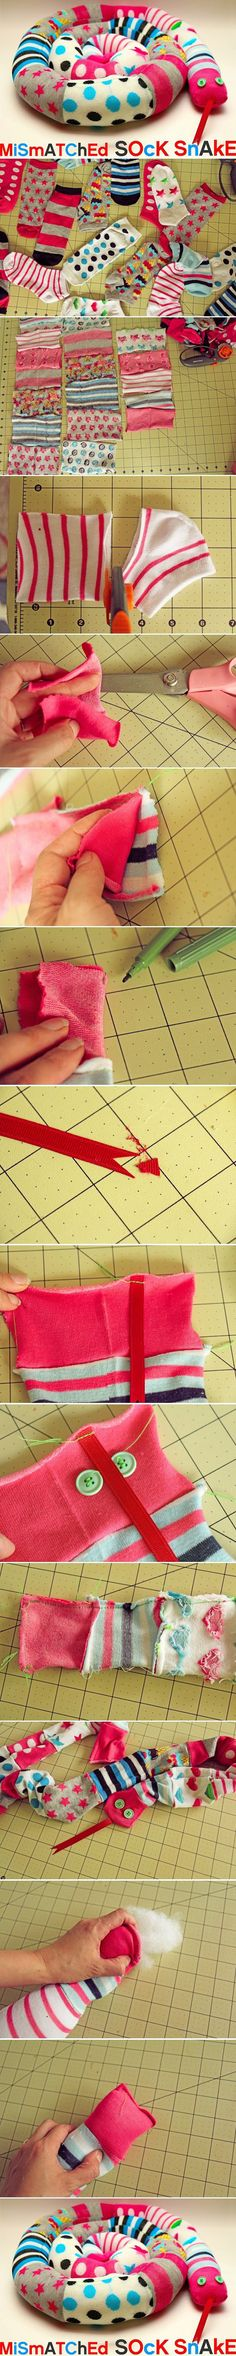 DIY Sock Snake- so not a quilt but still a cute sewing project idea Sock Crafts, Cute Crafts, Crafts To Do, Fabric Crafts, Sewing Crafts, Sewing Projects, Craft Projects, Crafts For Kids, Arts And Crafts